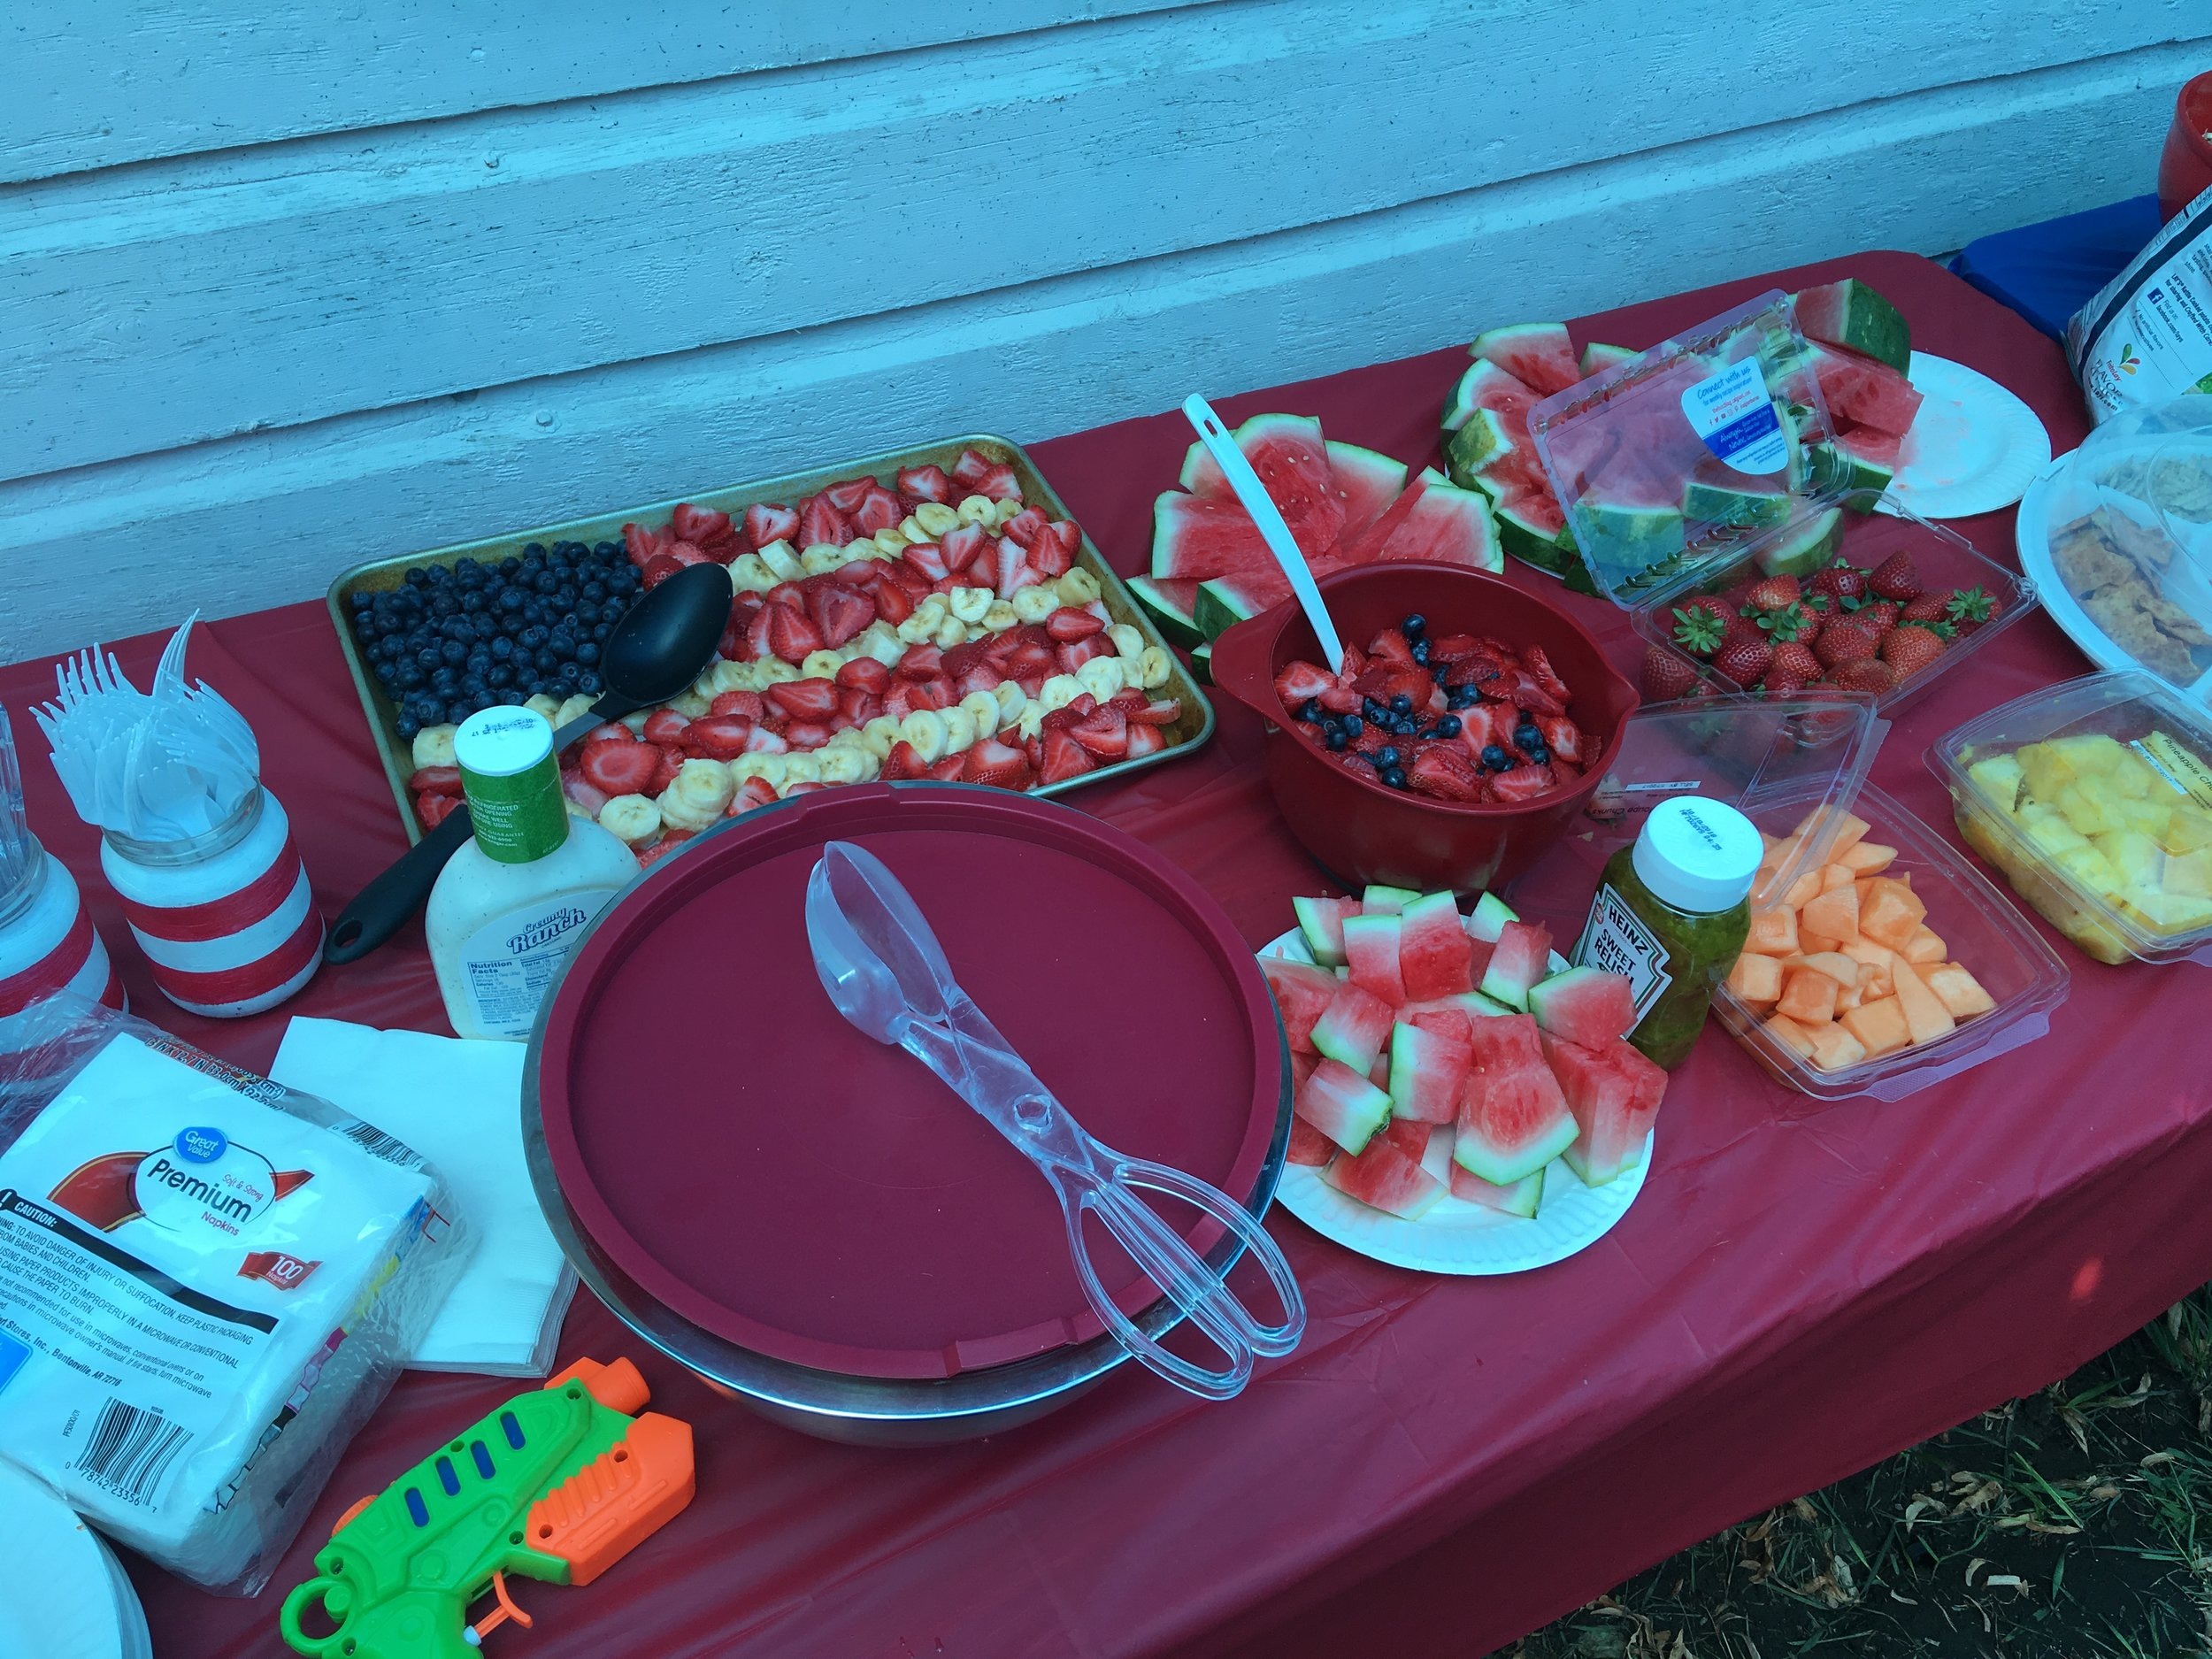 Our patriotic spread at the BBQ :)